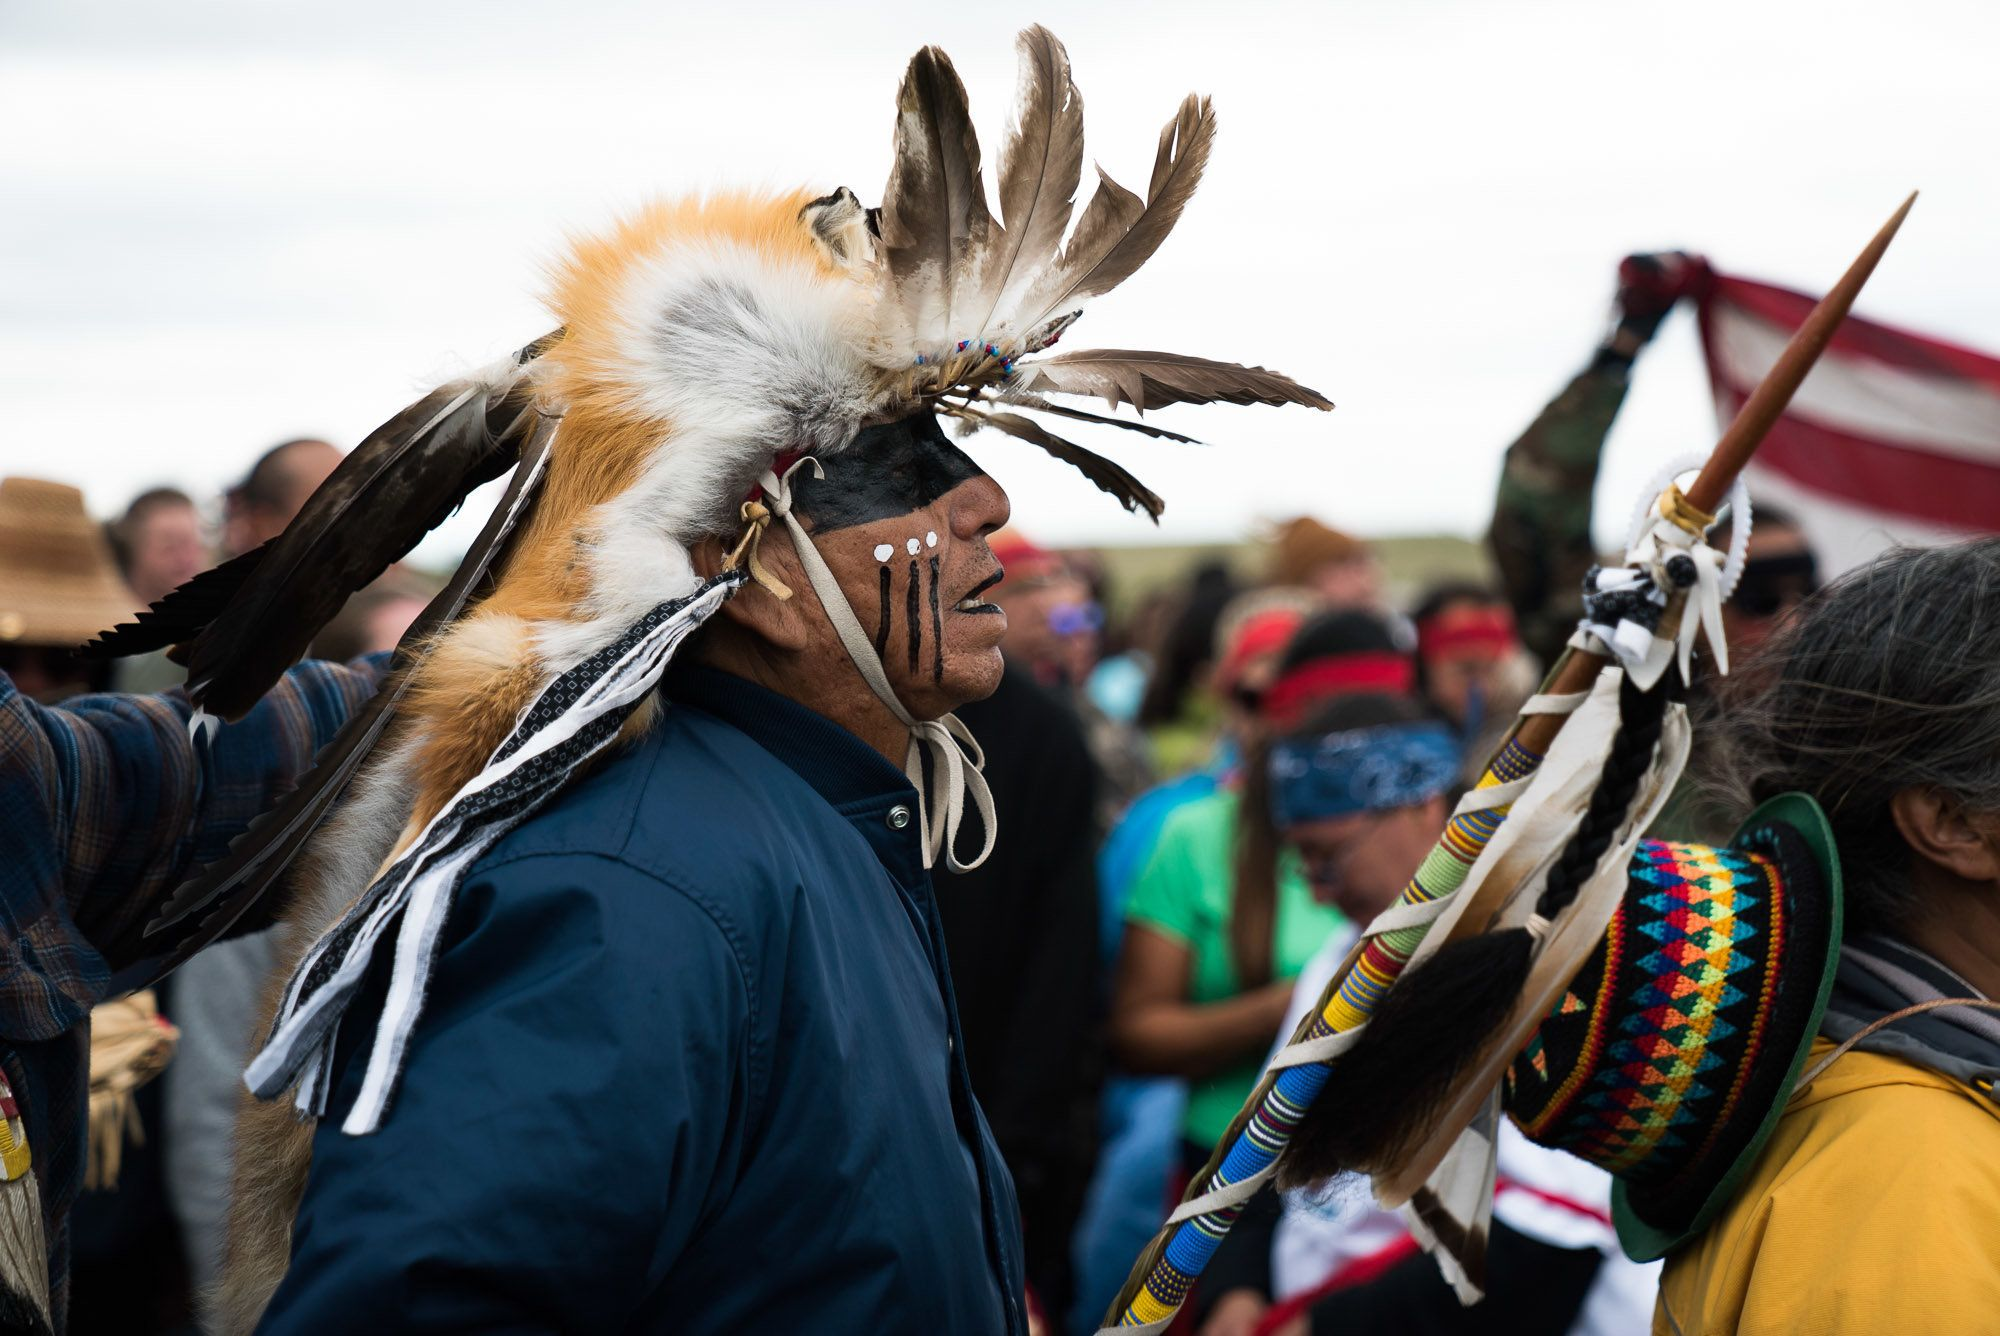 Thousands of people, includingNative American tribes, have rallied to prevent the oil pipeline's